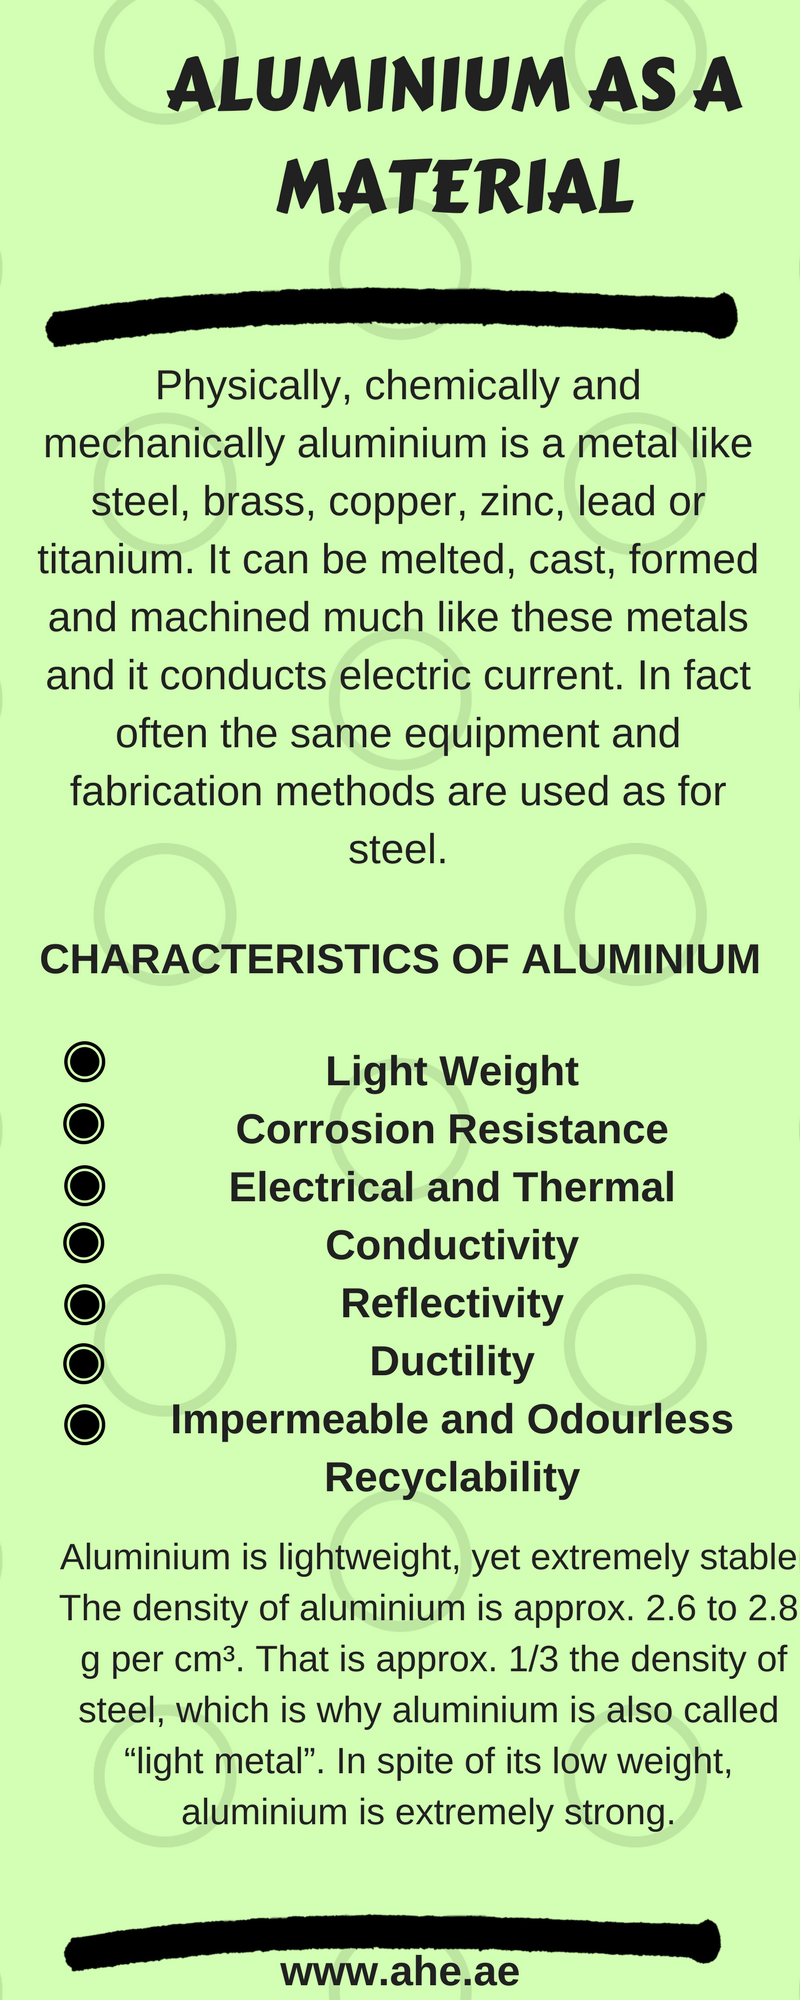 Physically, chemically and mechanically aluminium is a metal